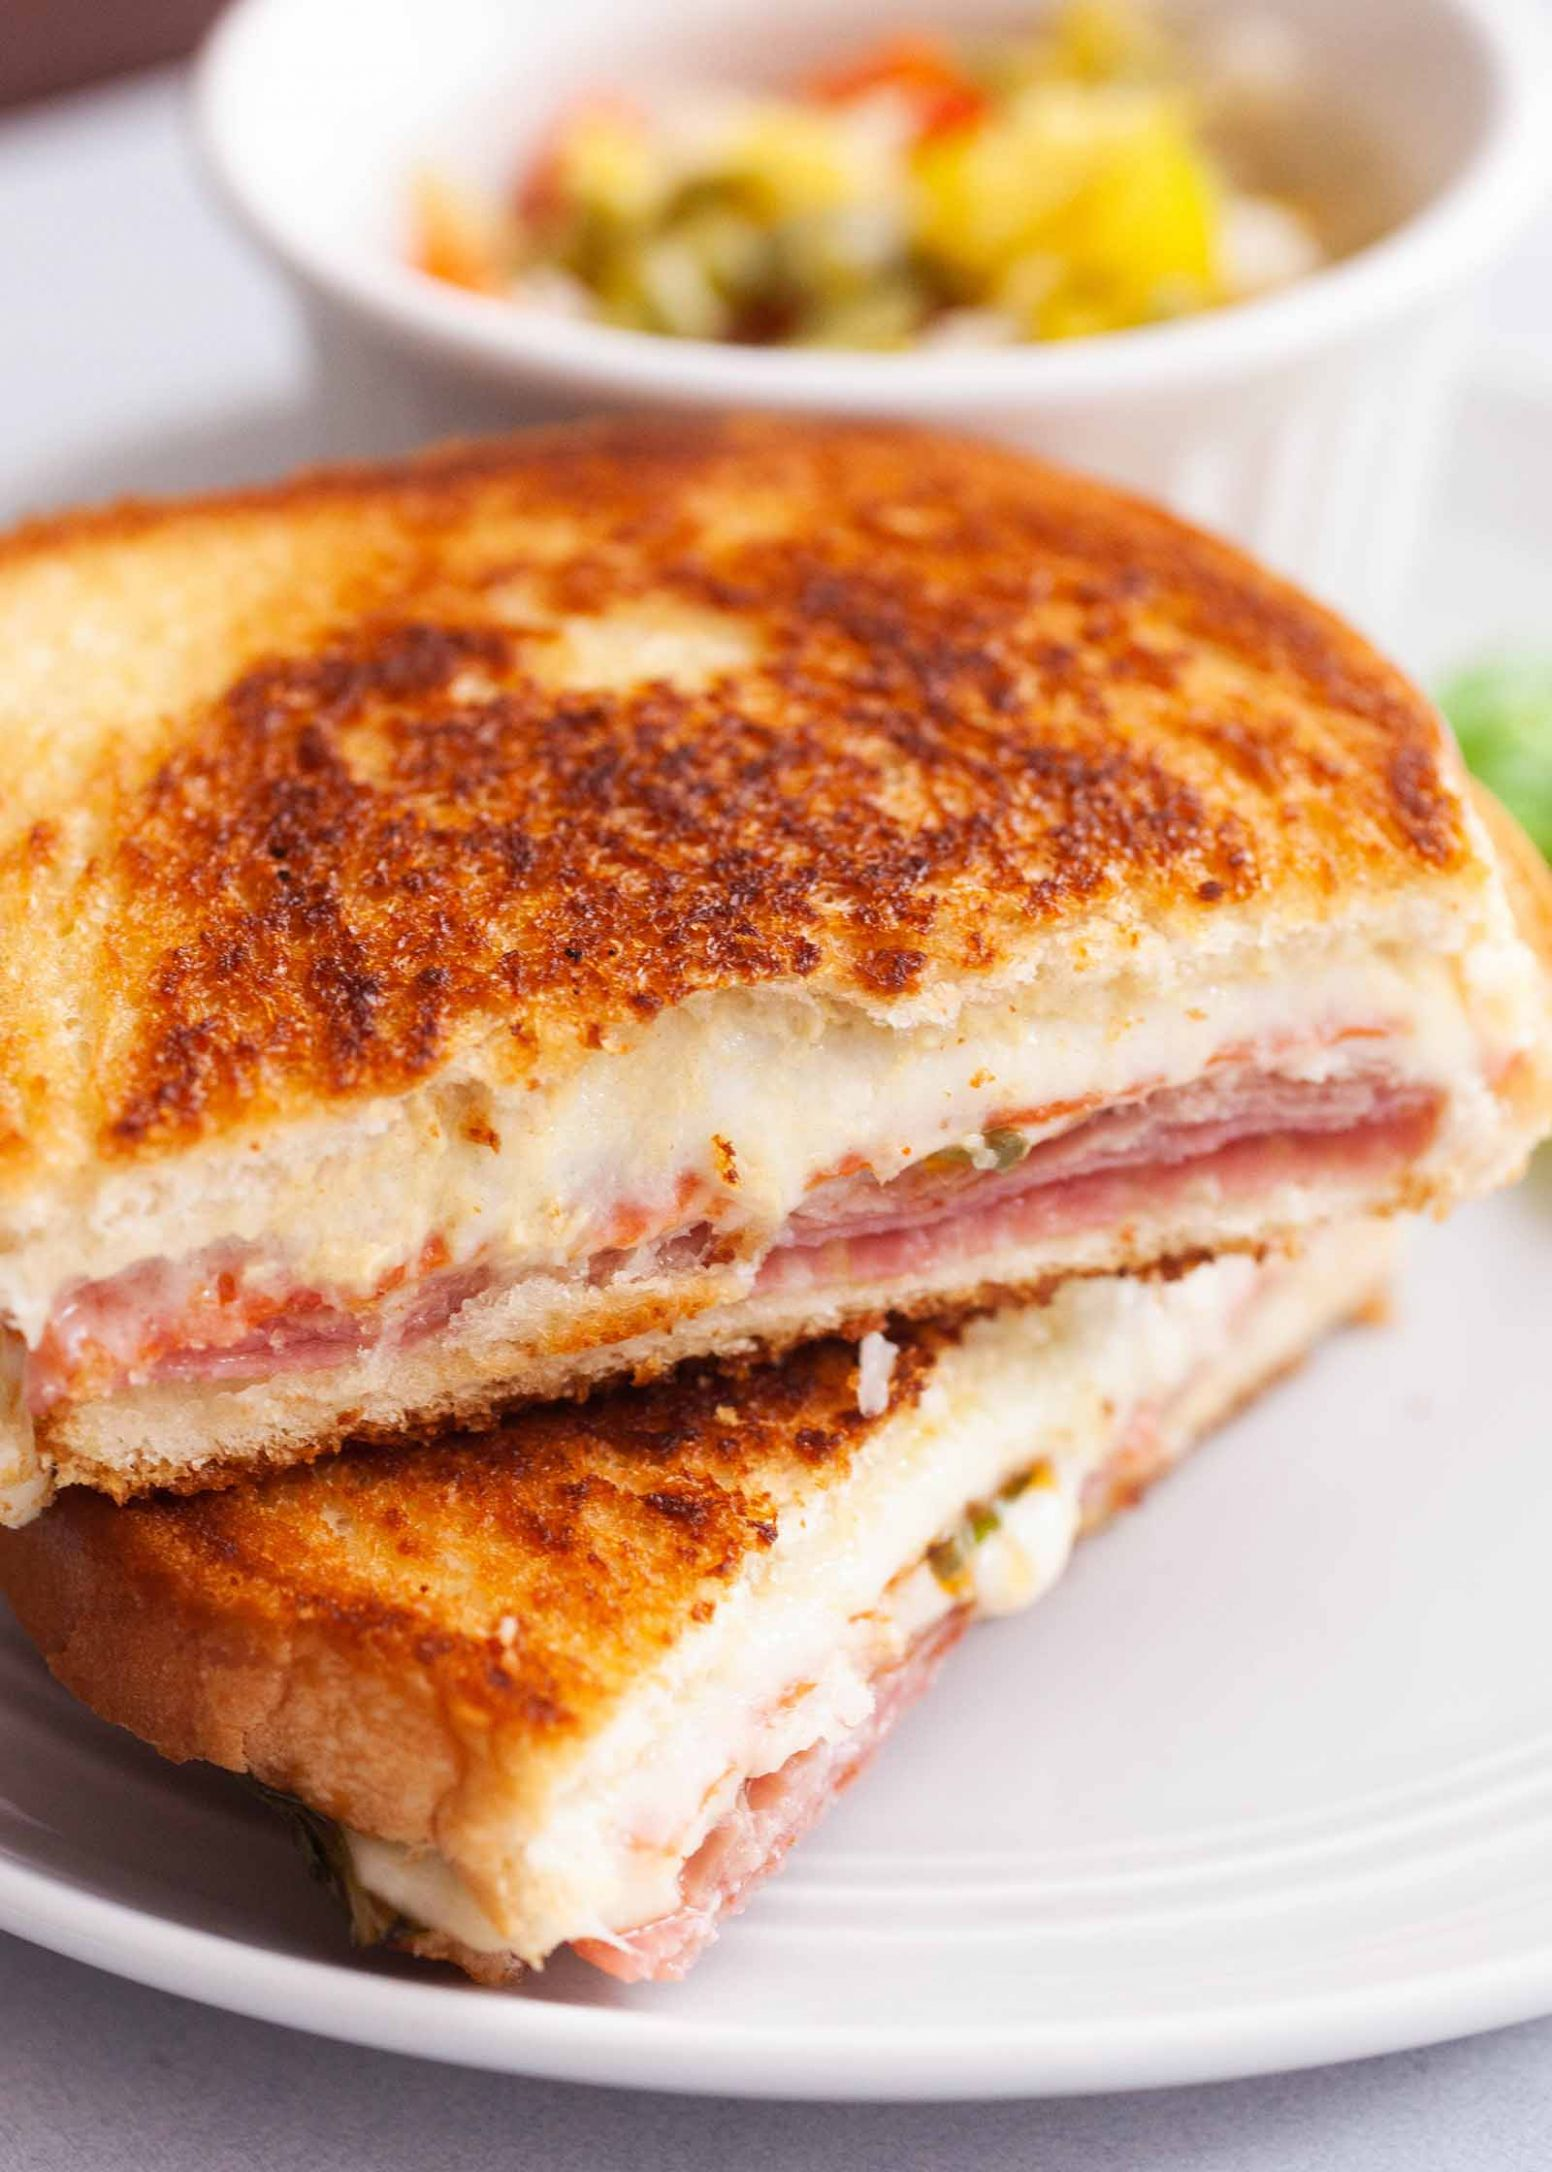 Italian Grilled Cheese Sandwiches - Sandwich Recipes Grilled Cheese